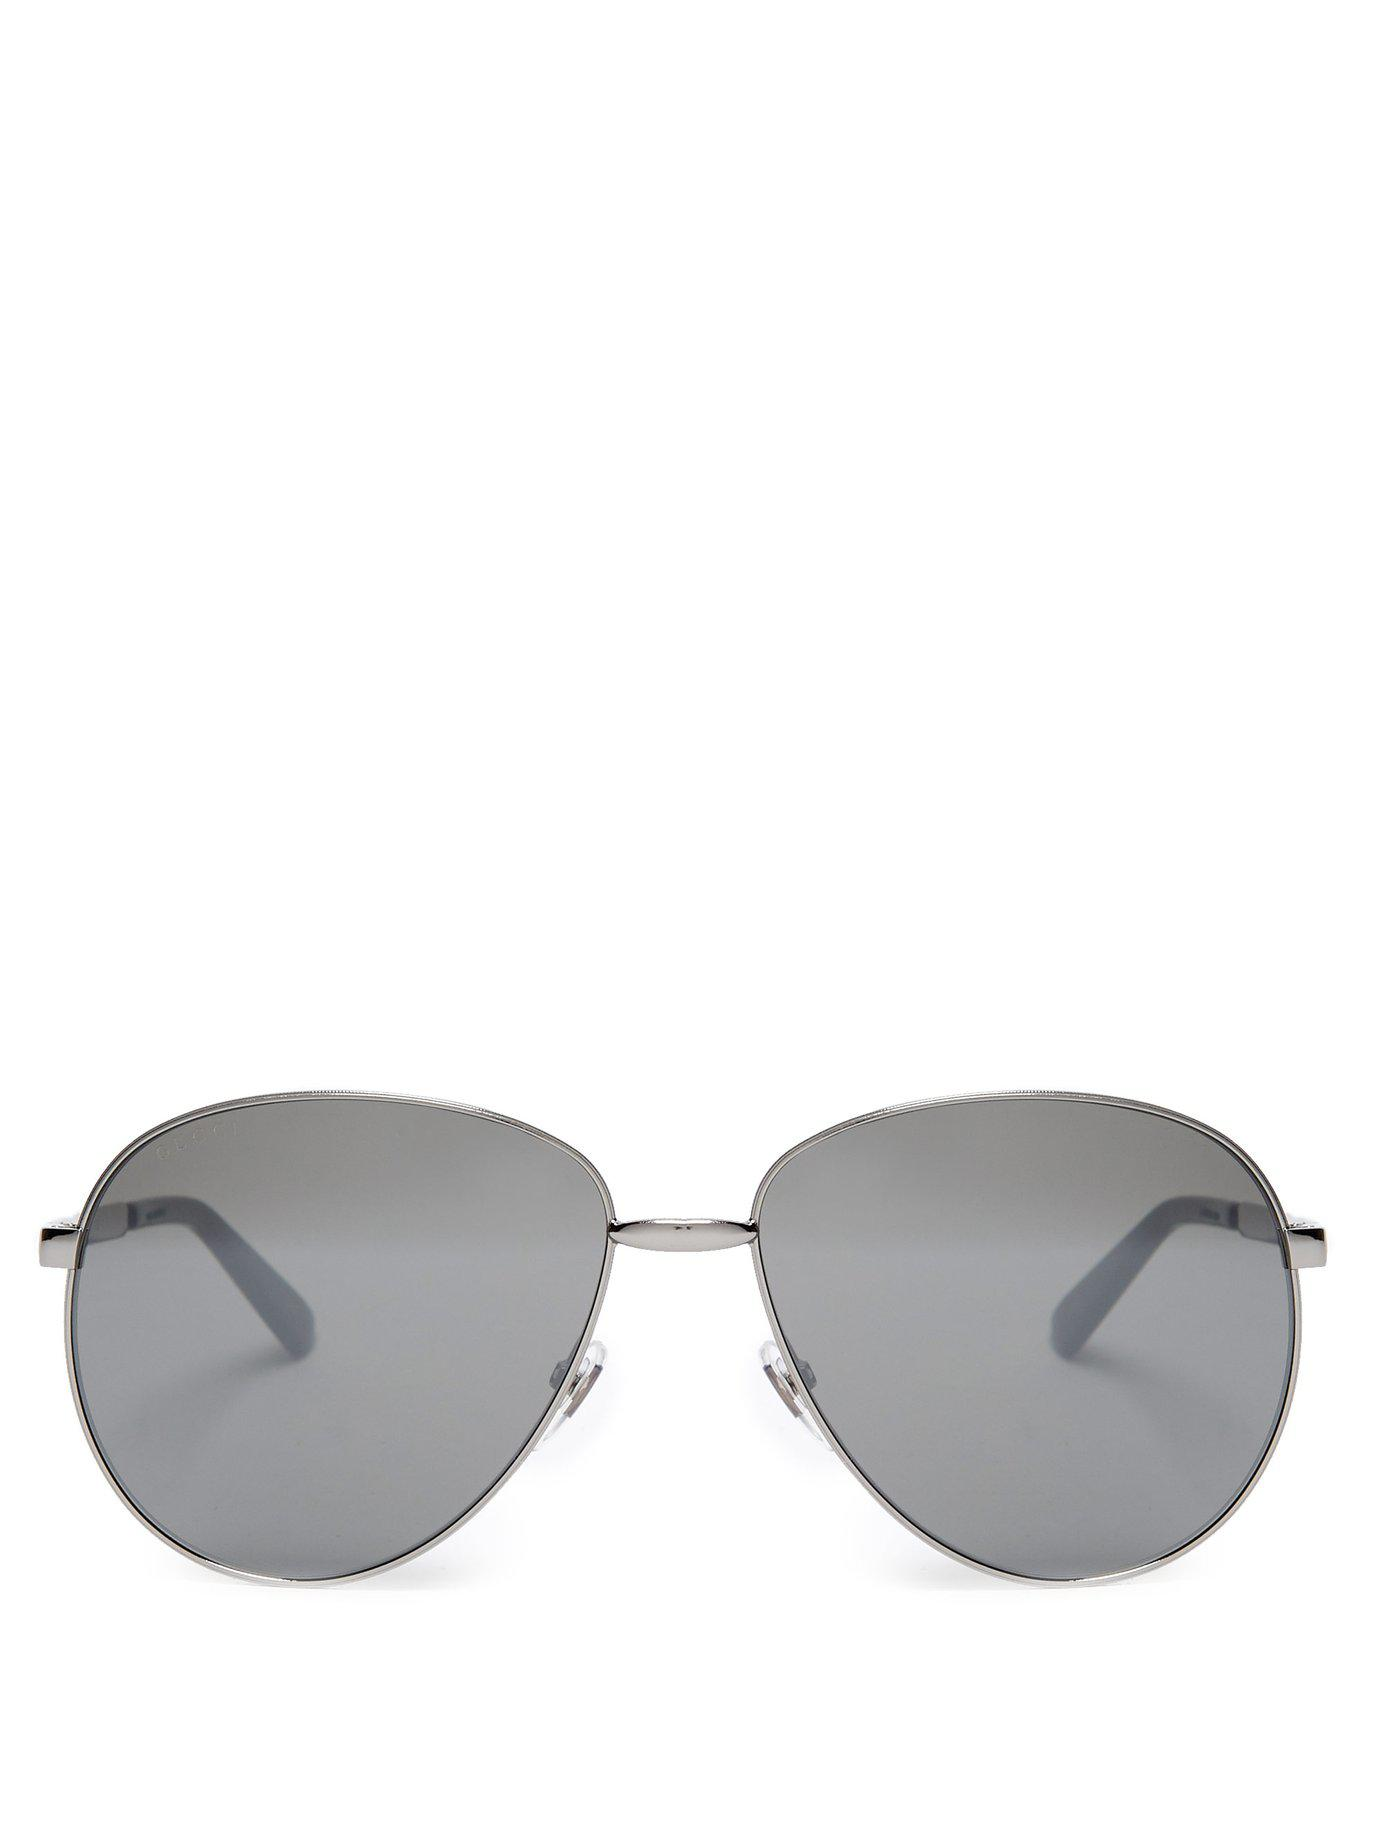 e0180d9ebd9 Lyst - Gucci Web Stripe Aviator Metal Sunglasses in Metallic for Men